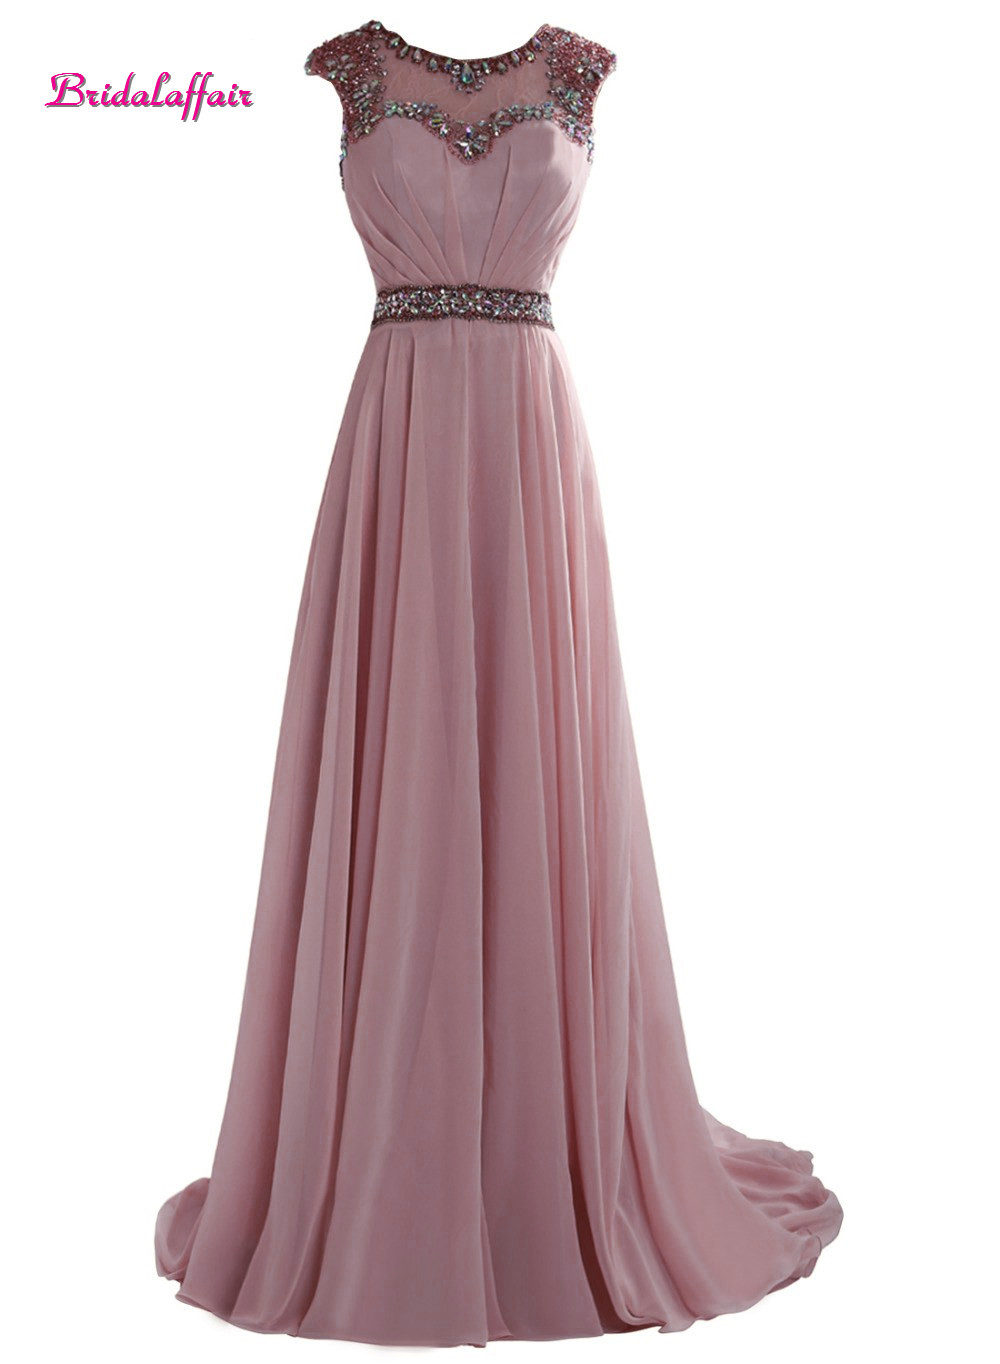 Bridalaffair Real Photo Robe de soiree Scoop Neck Long Prom Dresses 2018 Sweep Train JunoesqueBeadingParty Gown Vestido de festa in Prom Dresses from Weddings Events